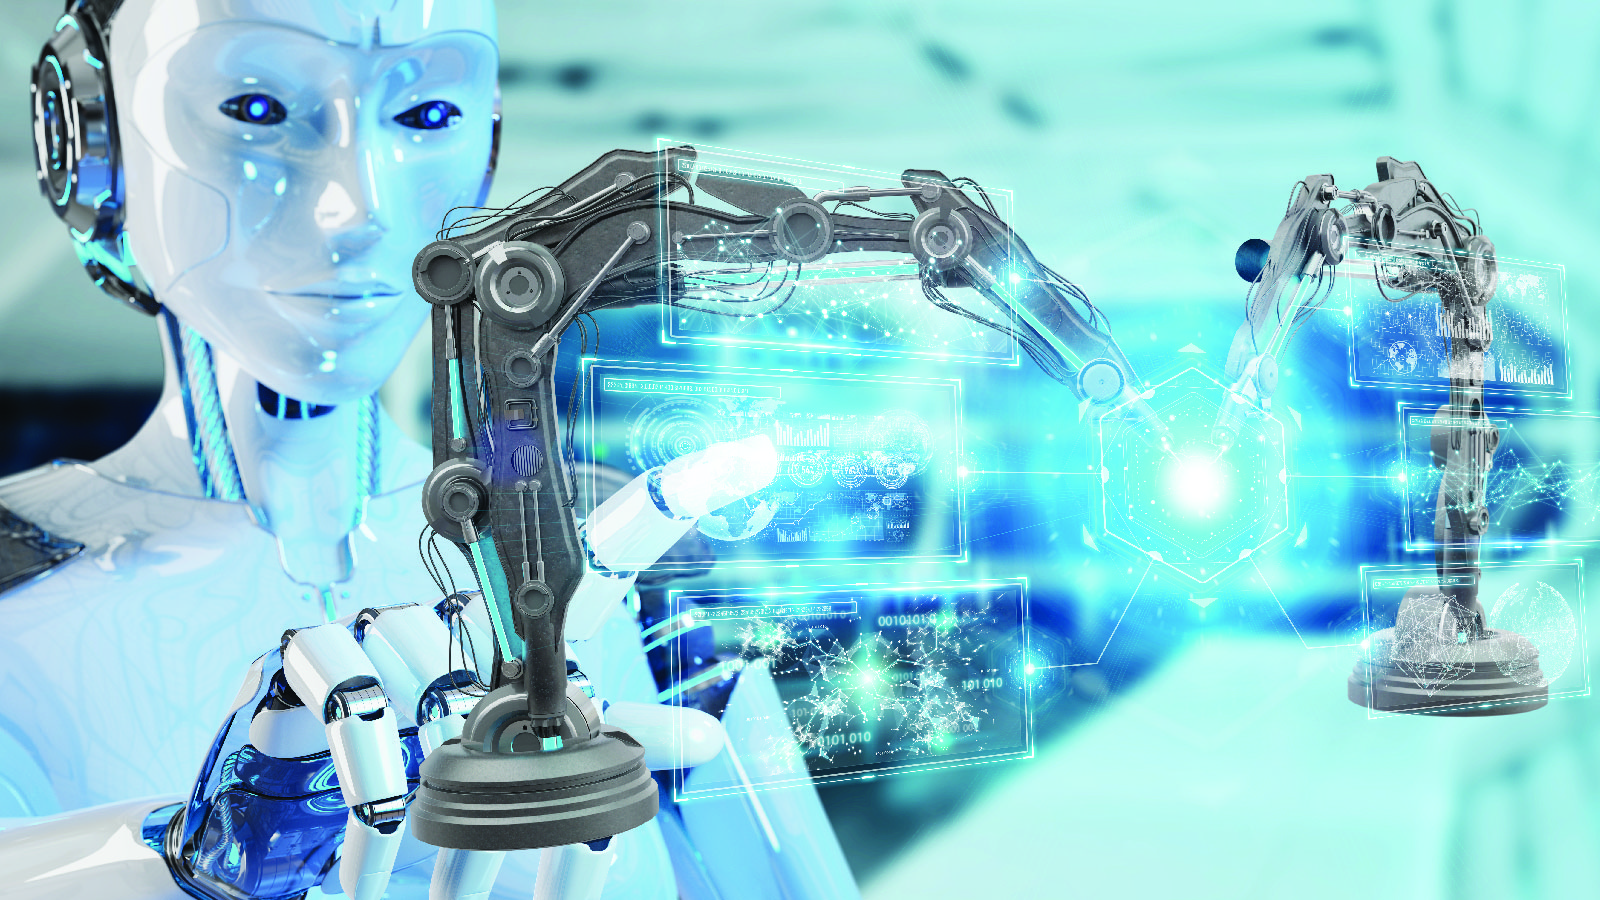 Automation, Robotics, RPA, Cobot, e-Commerce, Logistics, Warehouse, 2020, Robotic Process Automation, COVID-10, coronavirus pandemic, robots, COVID-19 news, COVID-19 outbreak, bots, lockdown, quarantine, YouTube, chatbot, machine learning, ML, artificial intelligence, AI, algorithms, 'contactless' service, 'contactless' delivery, virus, YouTube video, video creators, YouTube office, self-checkout, cashiers, cashier job, Richard Pak, sanitizing surface, sanitization, worldwide lockdown, business strategy, business model, marketing strategies, Professor, Clemson University, supermarkets, grocery industry, recycling industry, call centers, support services, warehouses, grocery stores, social media, CEO, CIO, Robots, Automation, Robotics, Cobot, RPA, Artificial Intelligence, ML